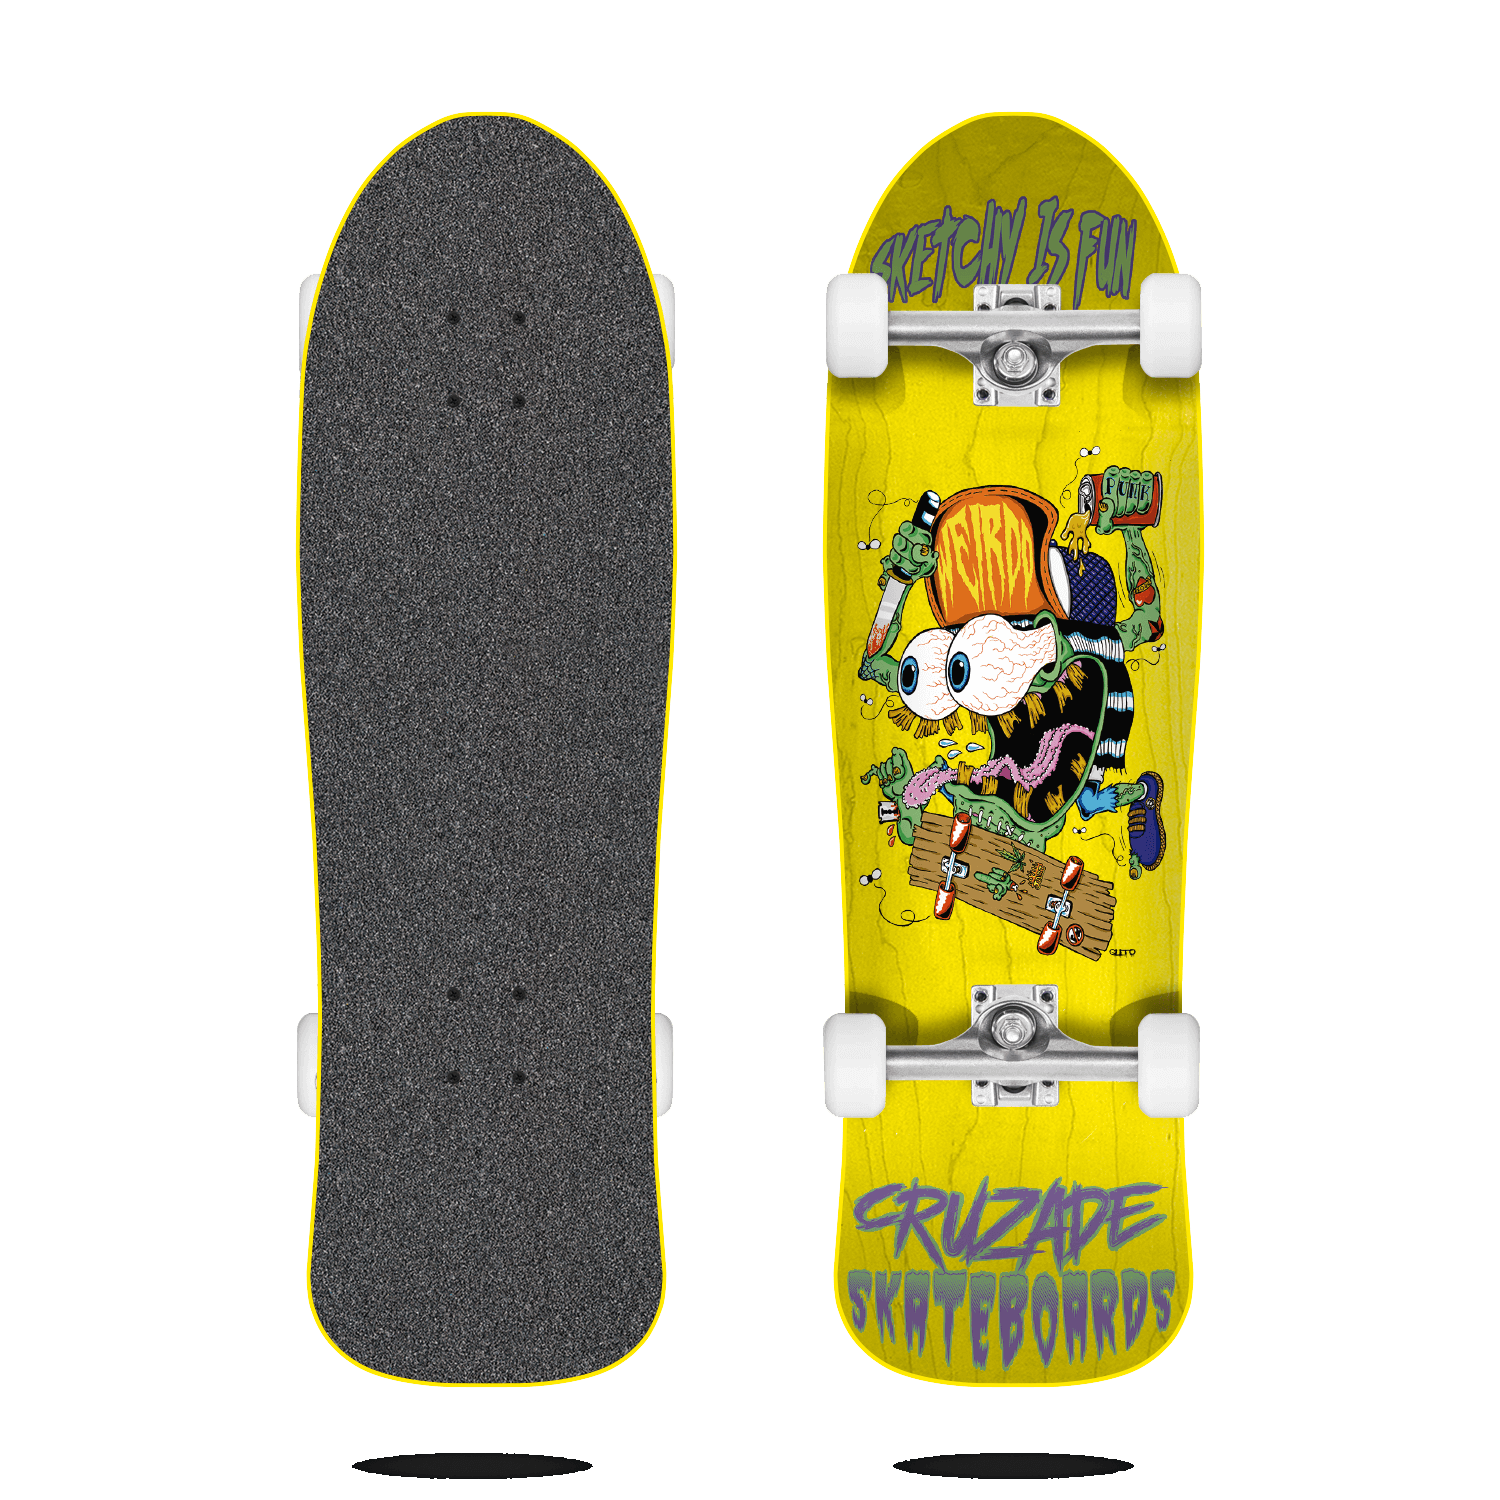 cruzade sketchy is fun yellow 9.0 complete